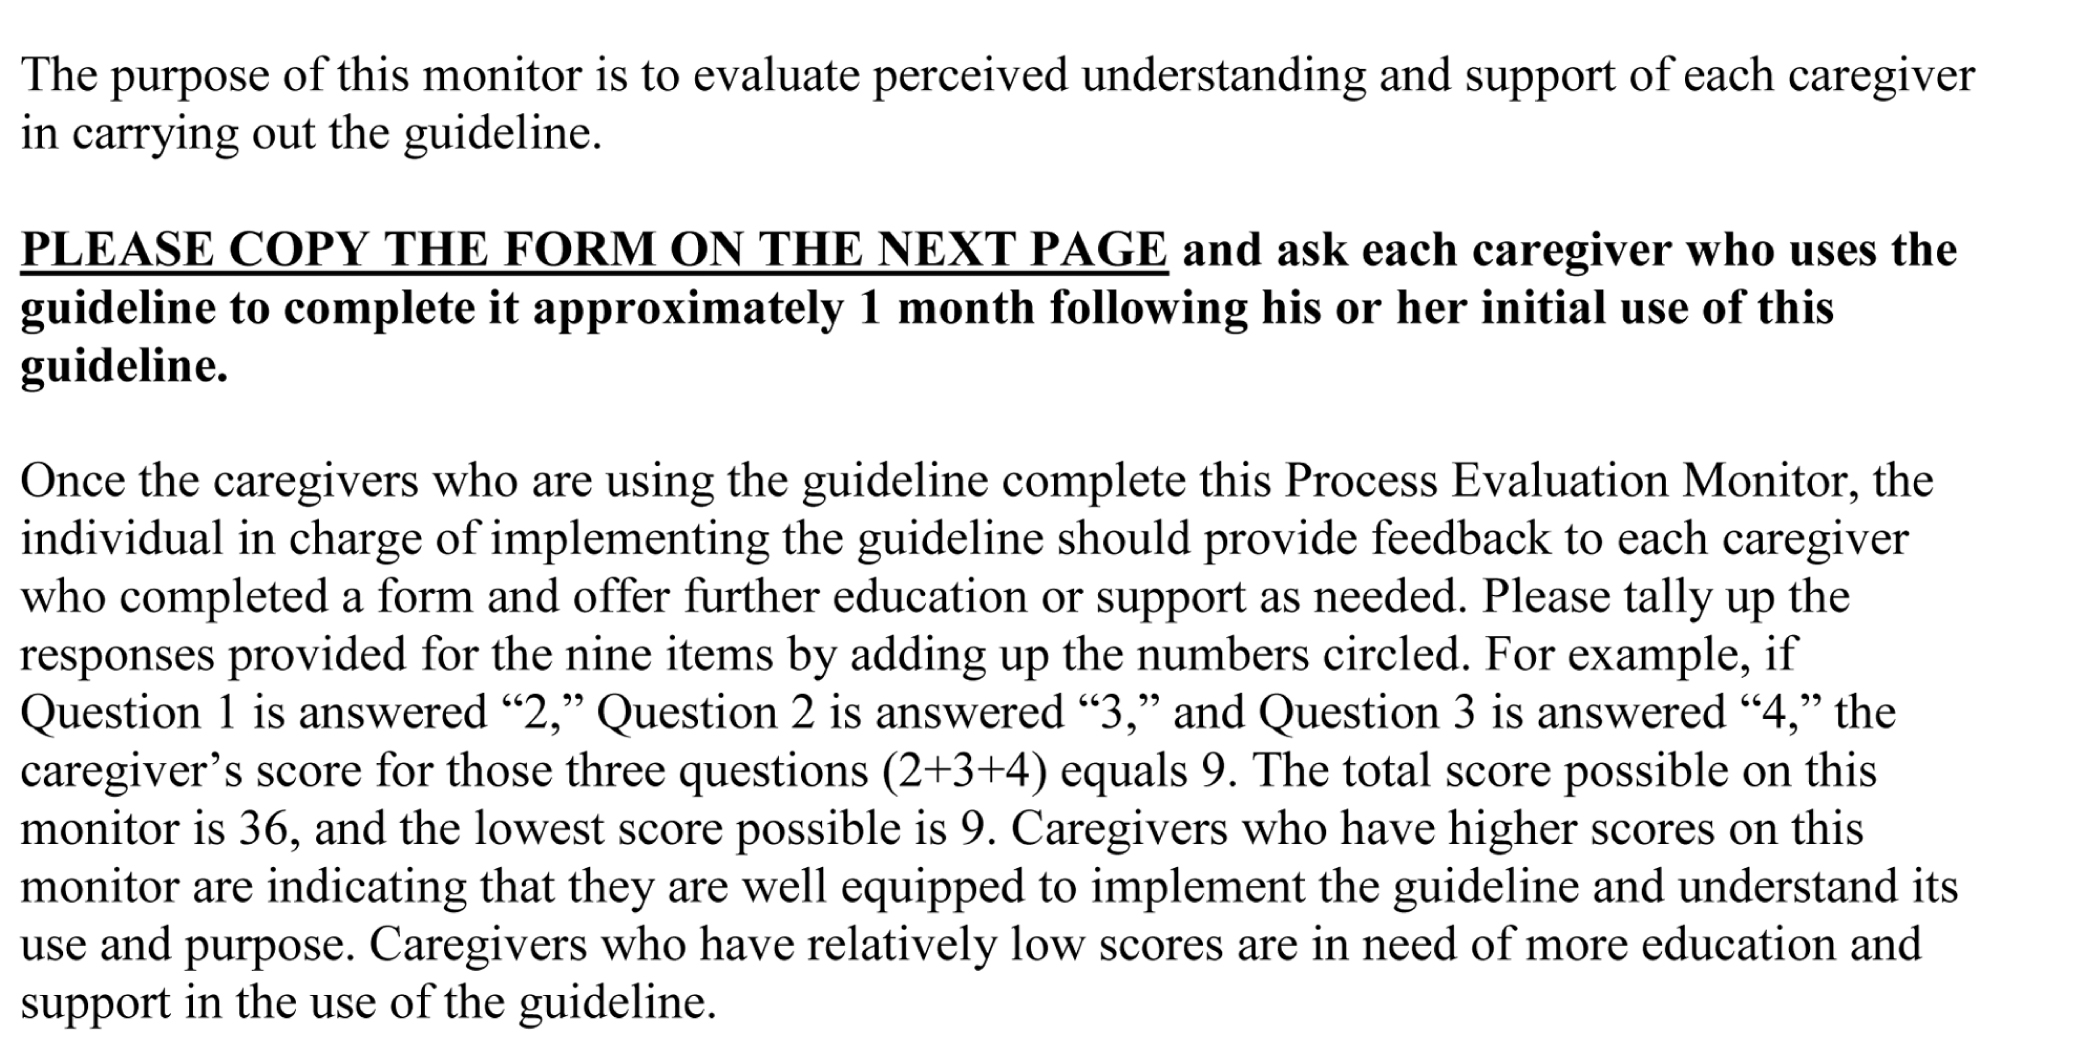 Instructions on Use of the Process Evaluation Monitor.